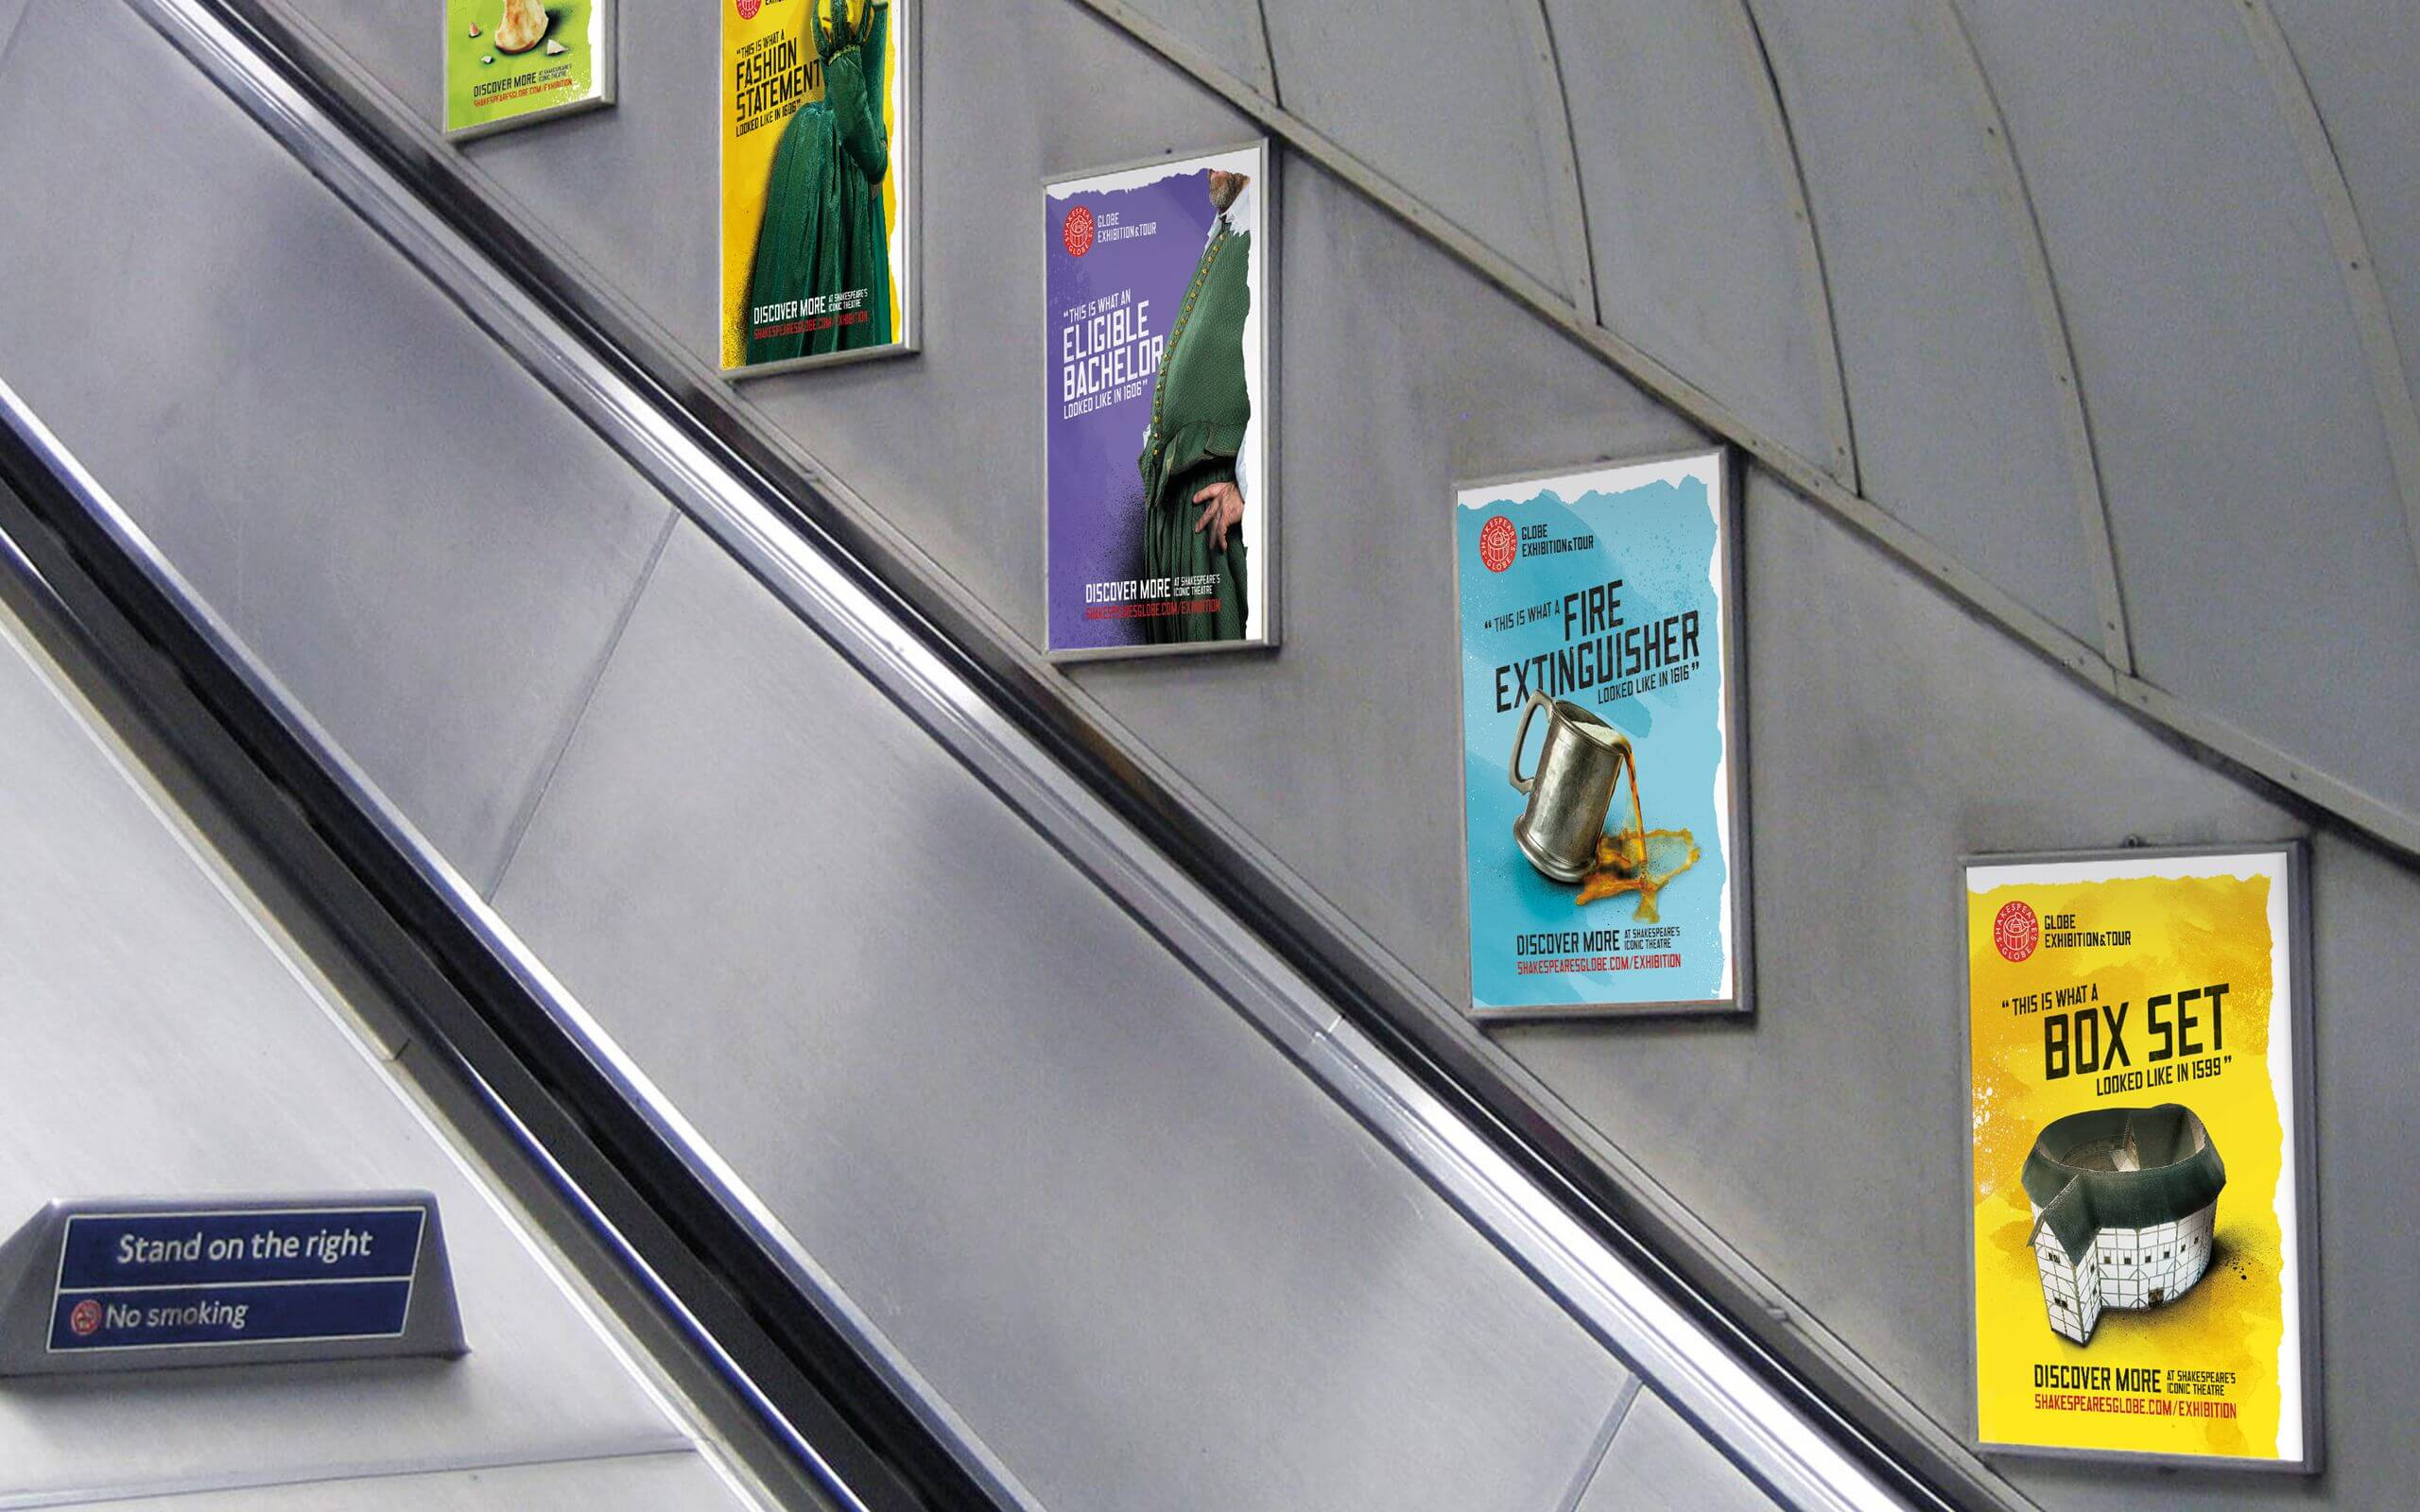 Globe tube adverts campaign